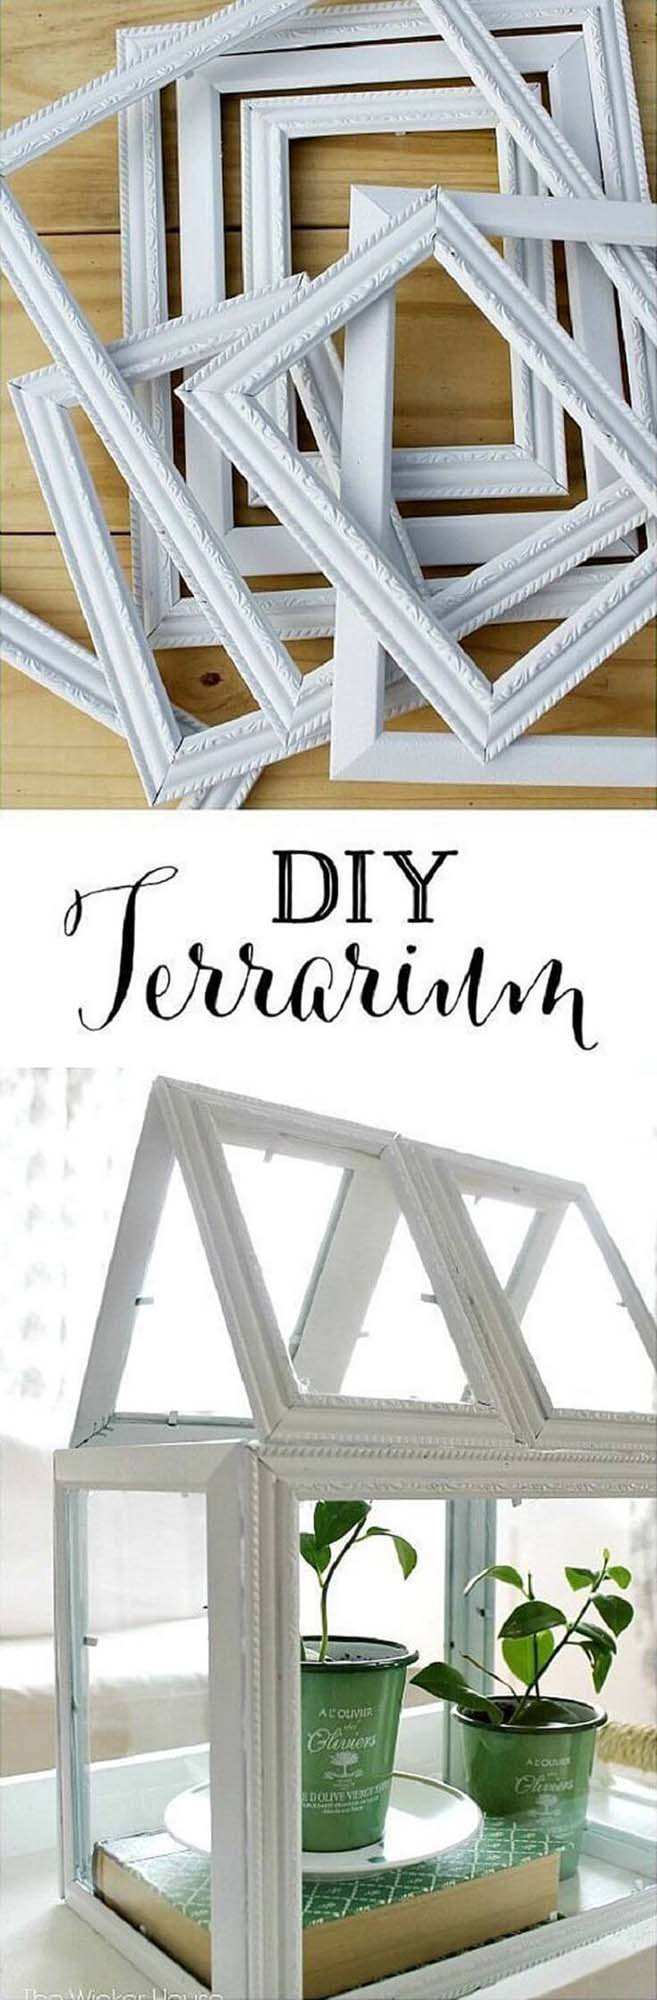 DIY Picture Frame Greenhouse Terrarium #dollarstore #diy #homedecor #decorhomeideas